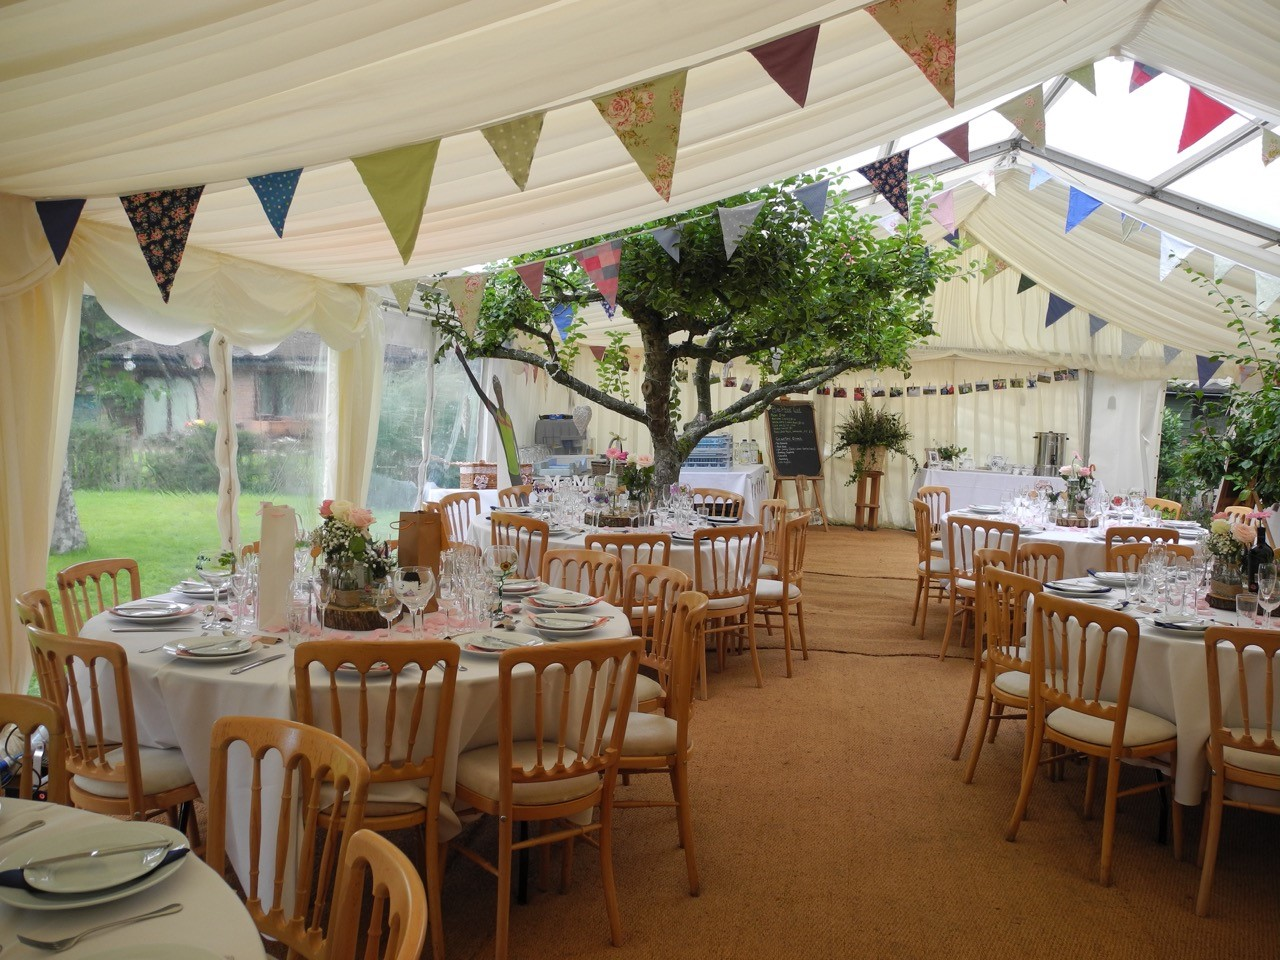 marquee wedding bunting in orchard